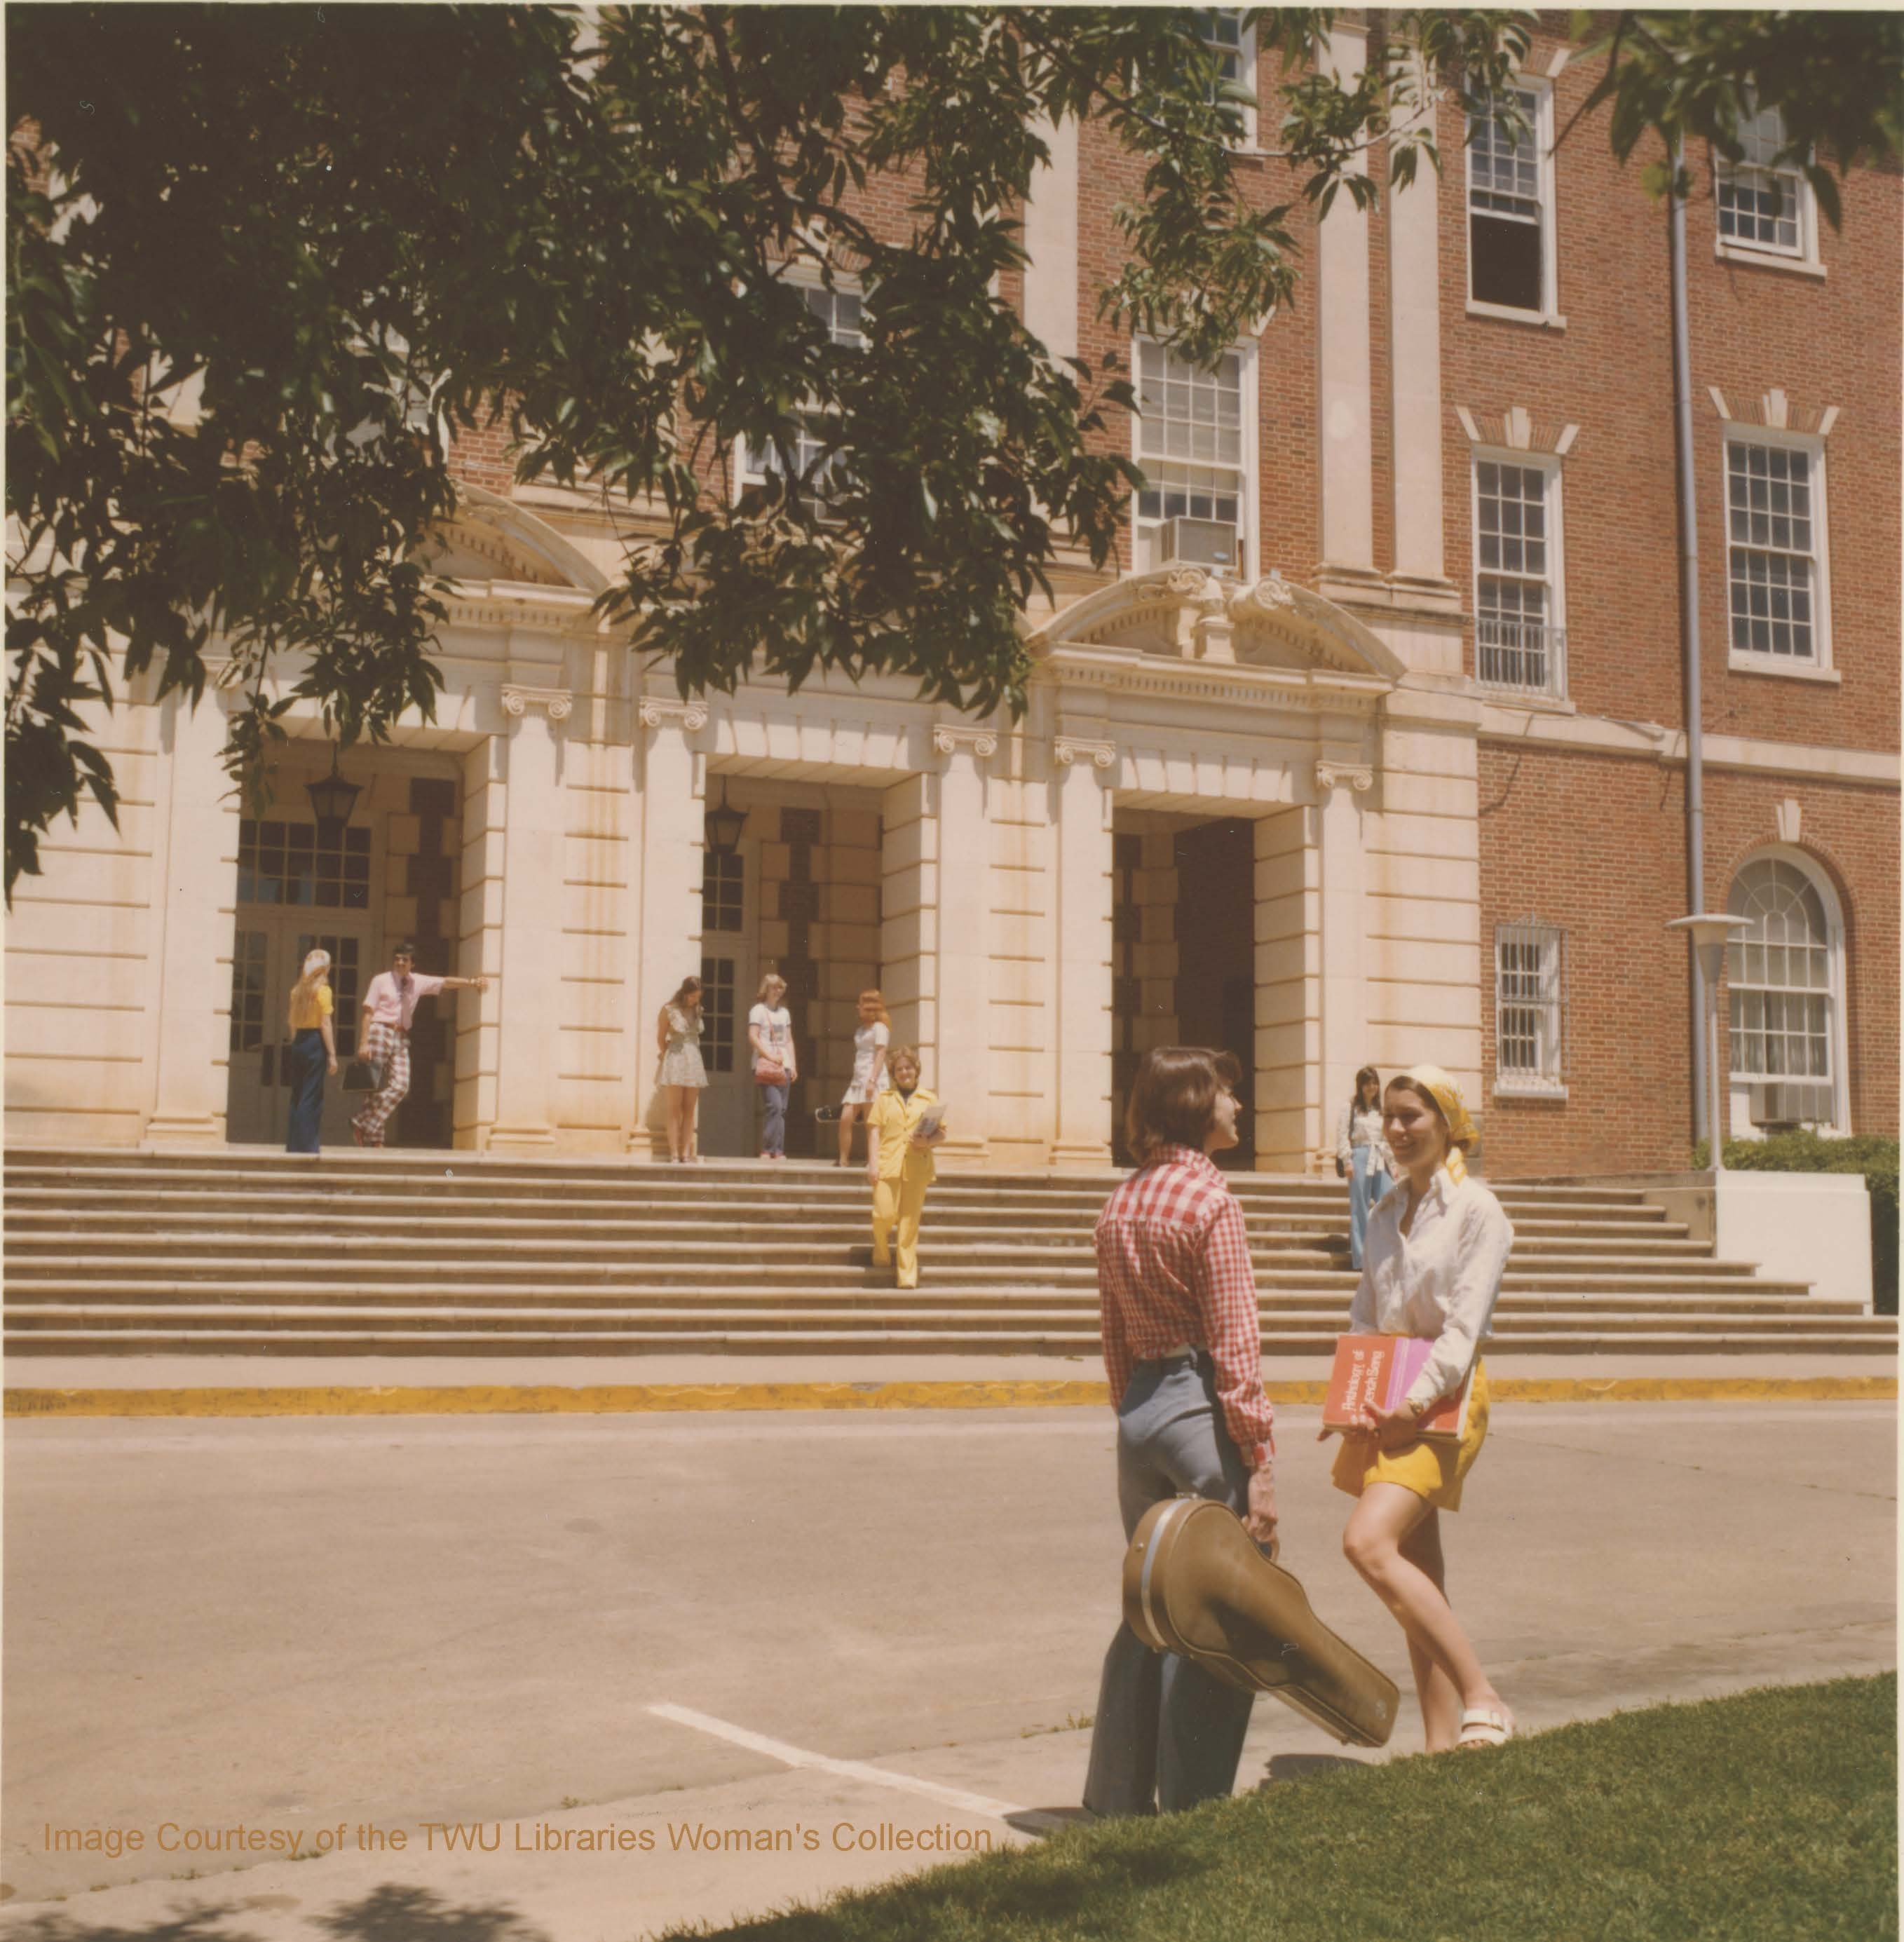 Students outside TWU Music Building Circa 1970s. Courtesy of the Texas Woman's University Woman's Collection